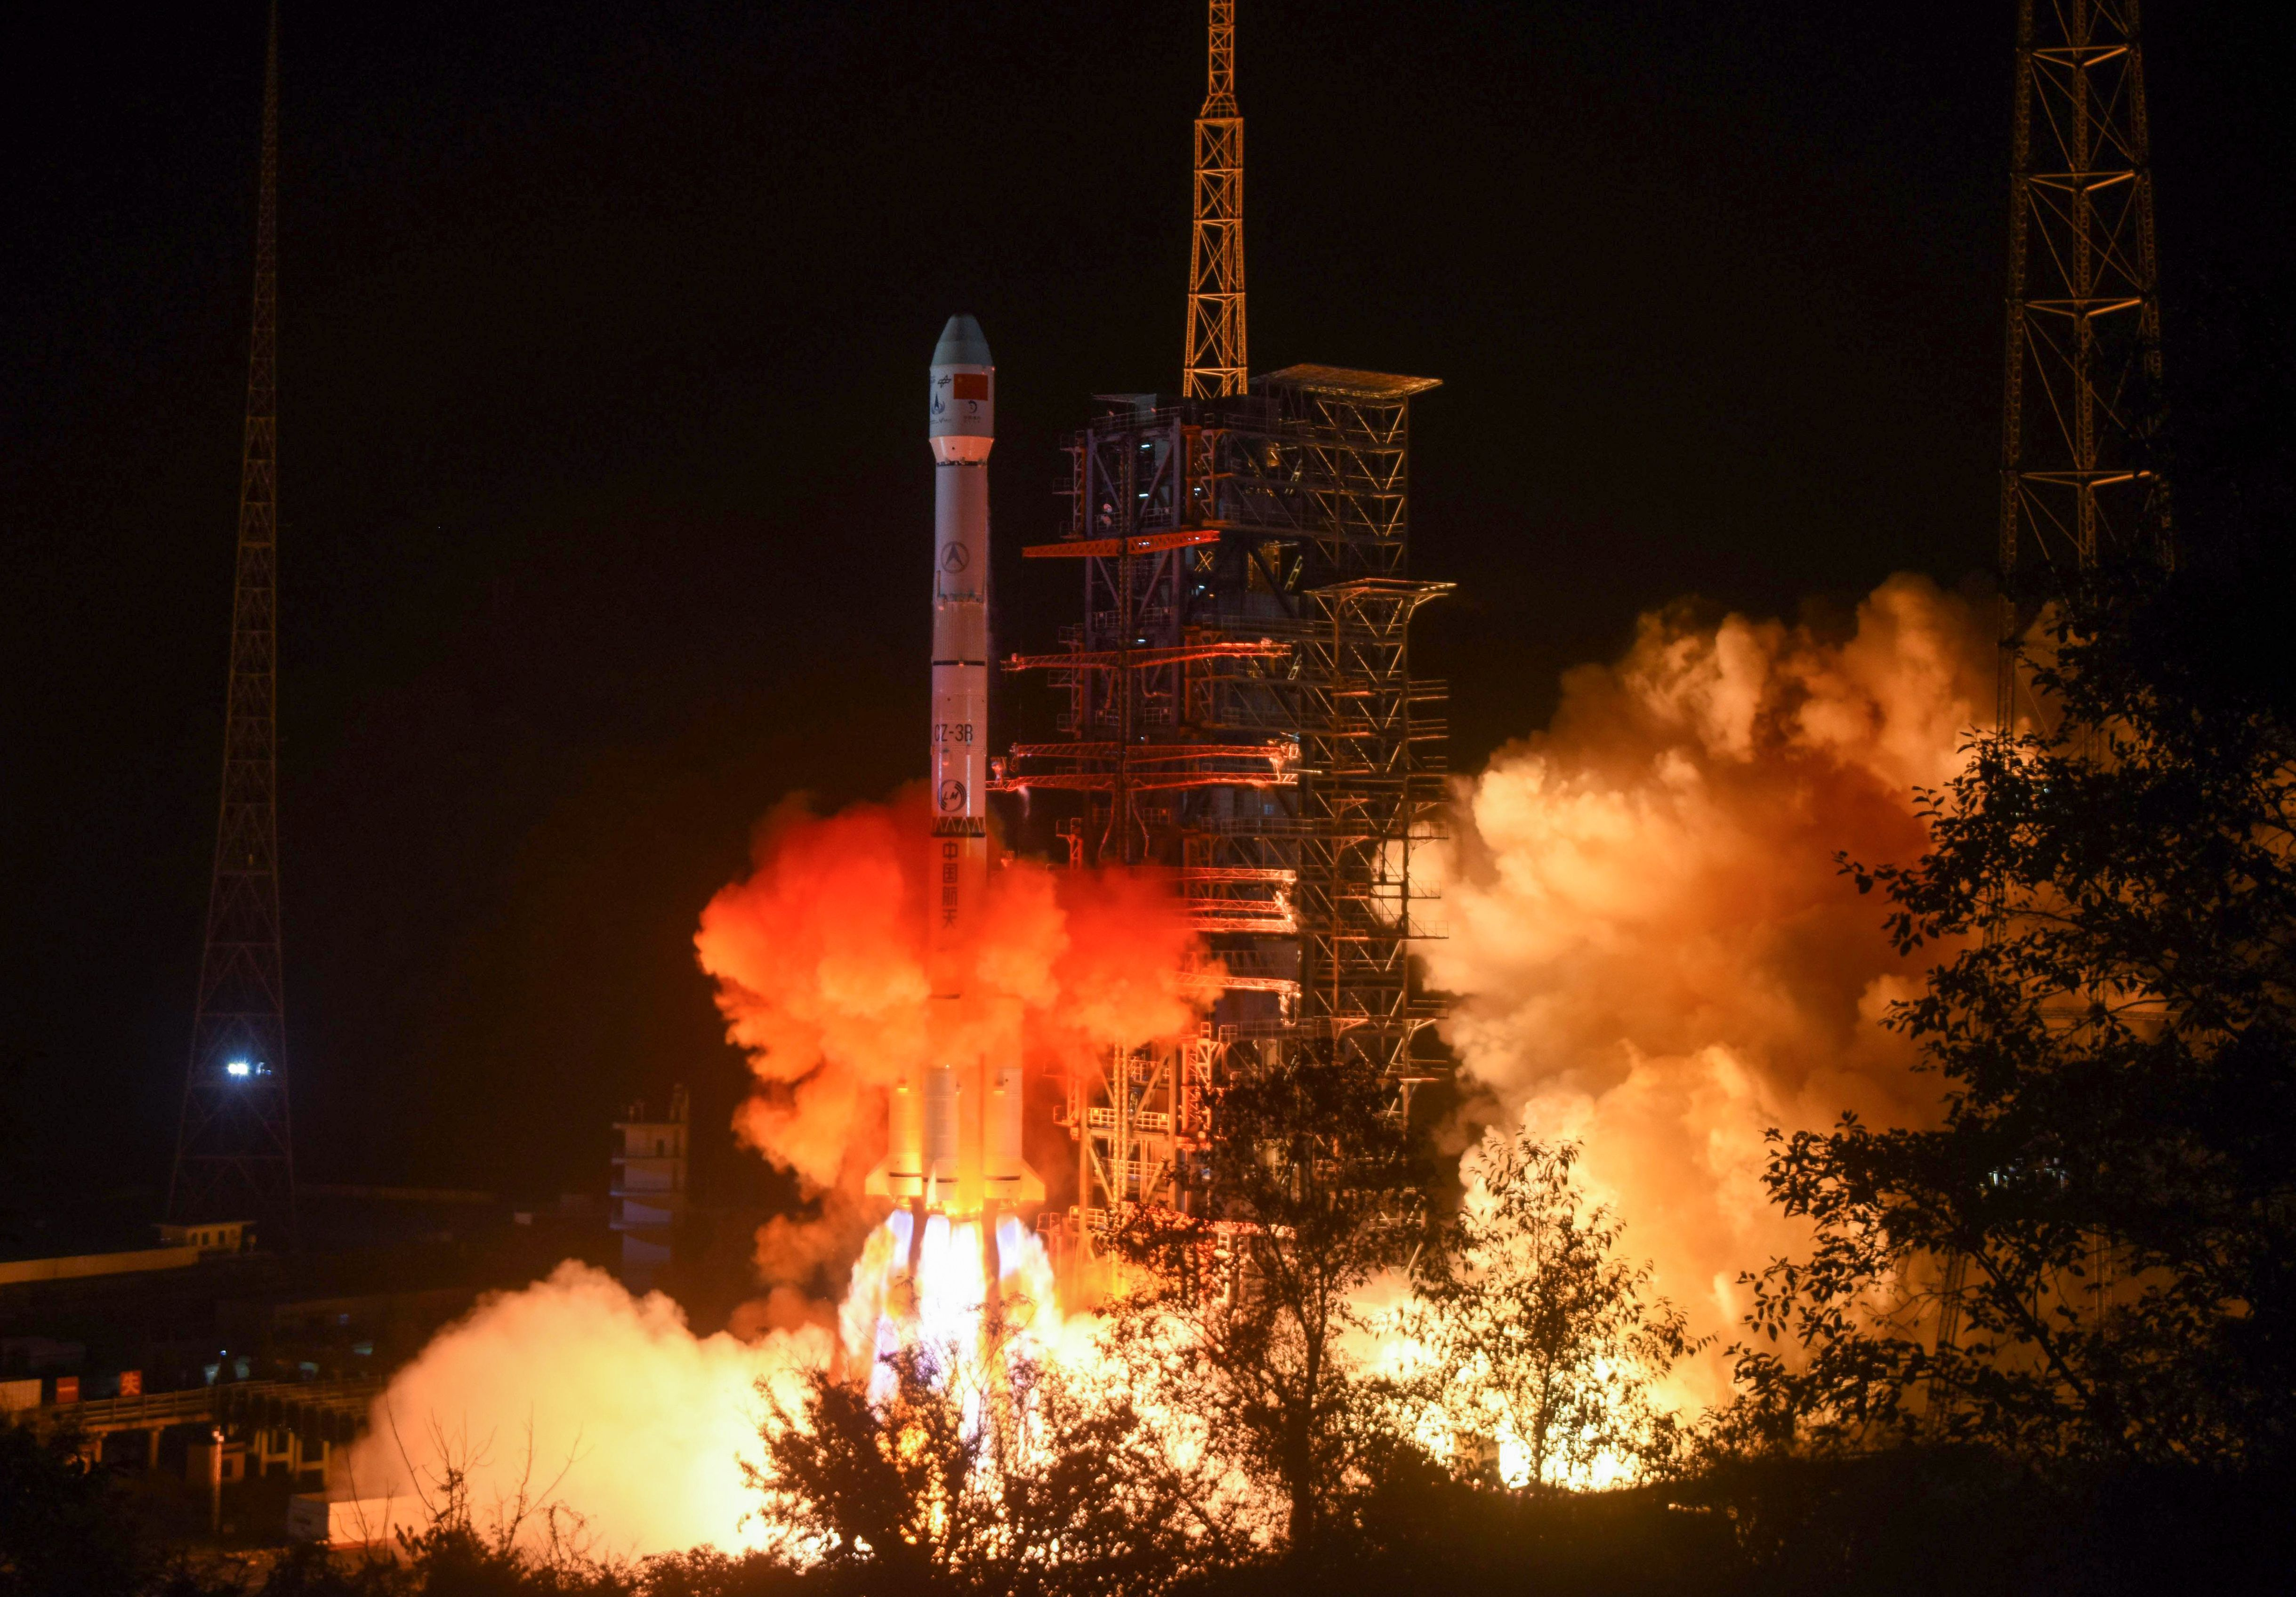 A Long March 3B rocket lifts off from the Xichang launch center in China's southwestern Sichuan province on Dec. 8, 2018.